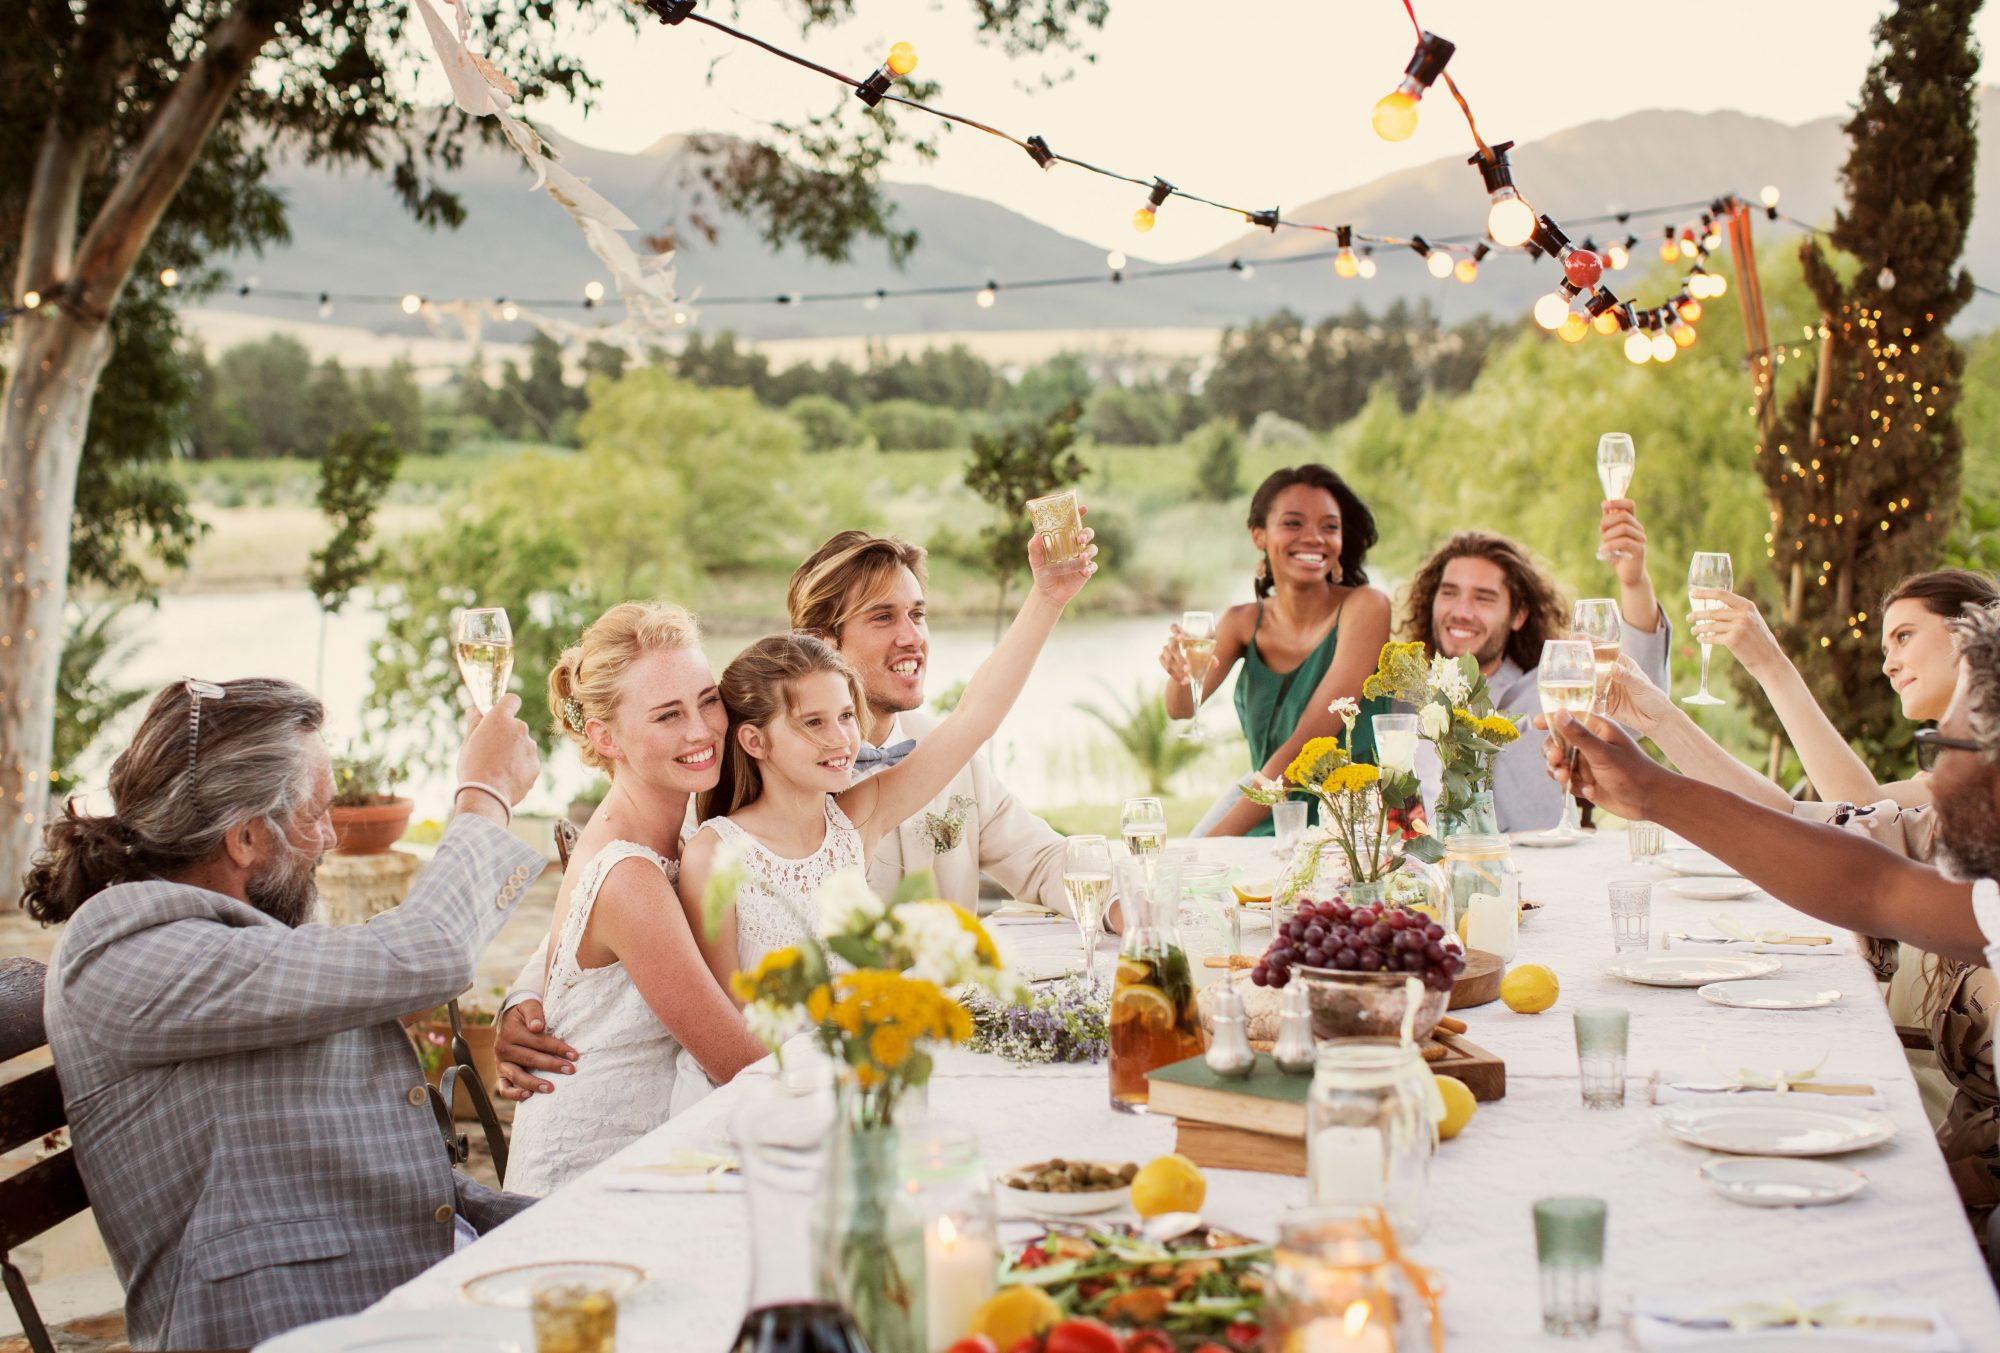 Who Is Invited To The Wedding Rehearsal Dinner: Rehearsal Dinner Etiquette: The Ultimate Guide